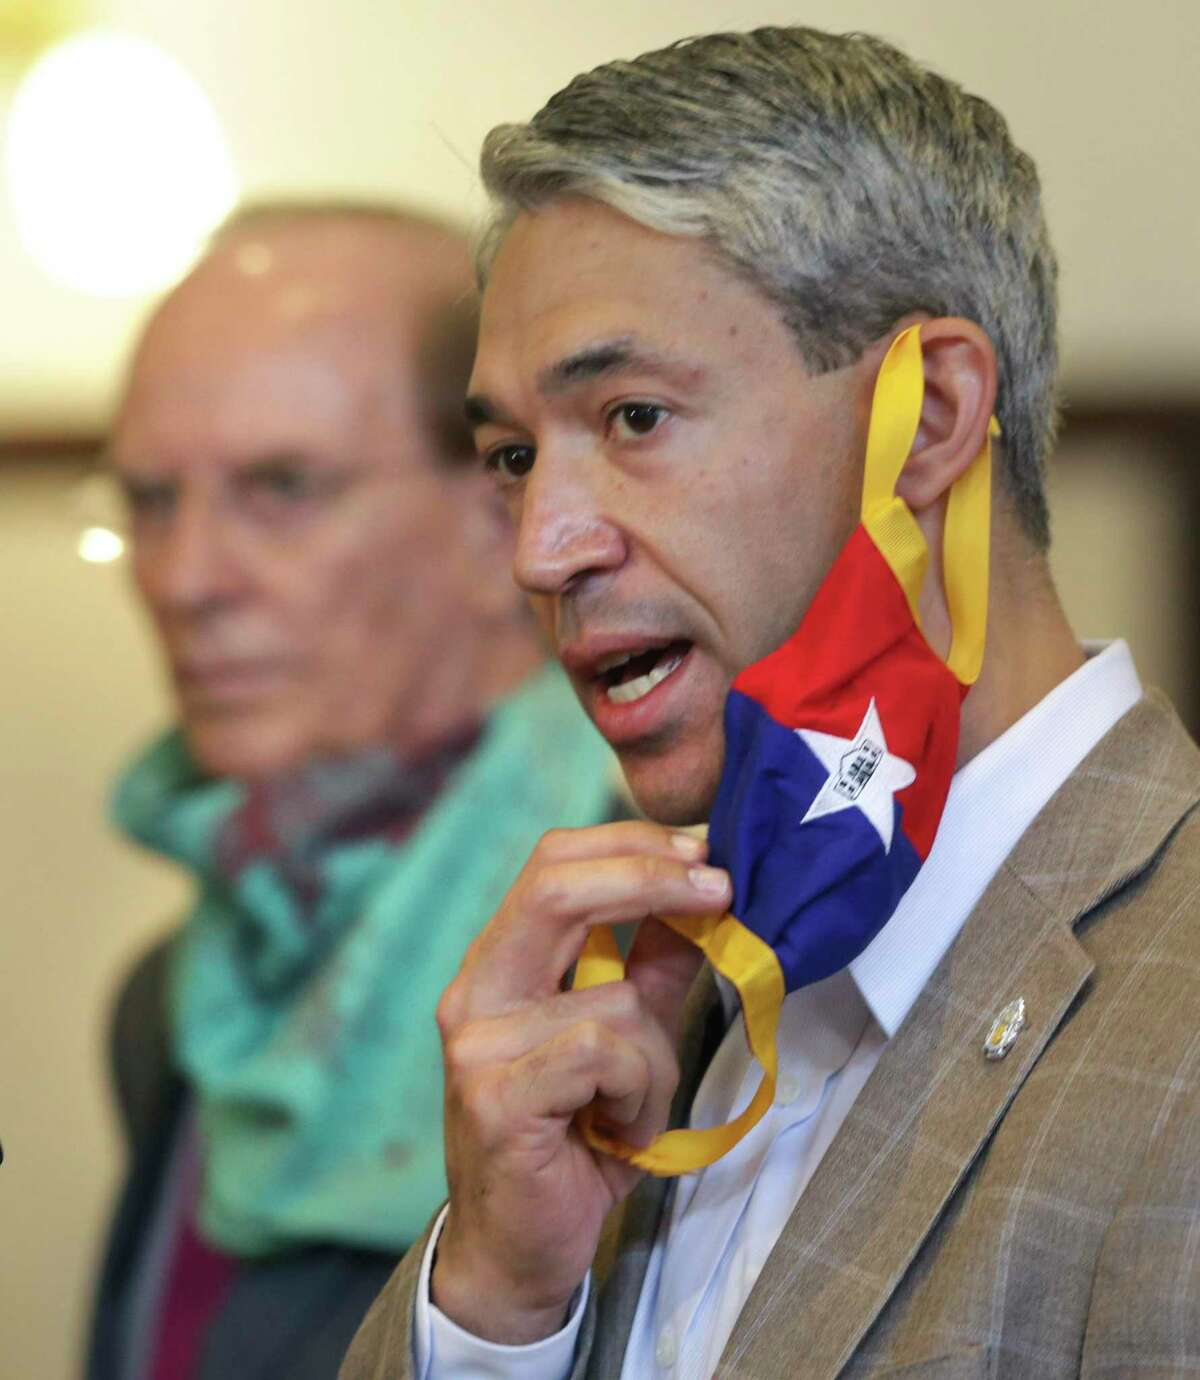 Mayor Ron Nirenberg, Bexar County Judge Nelson Wolff, and other city and county leaders held a press conference to announce a new executive order to help fight the resurgence of novel coronavirus, at the Bexar County Courthouse, on Wednesday, June, 17, 2020.